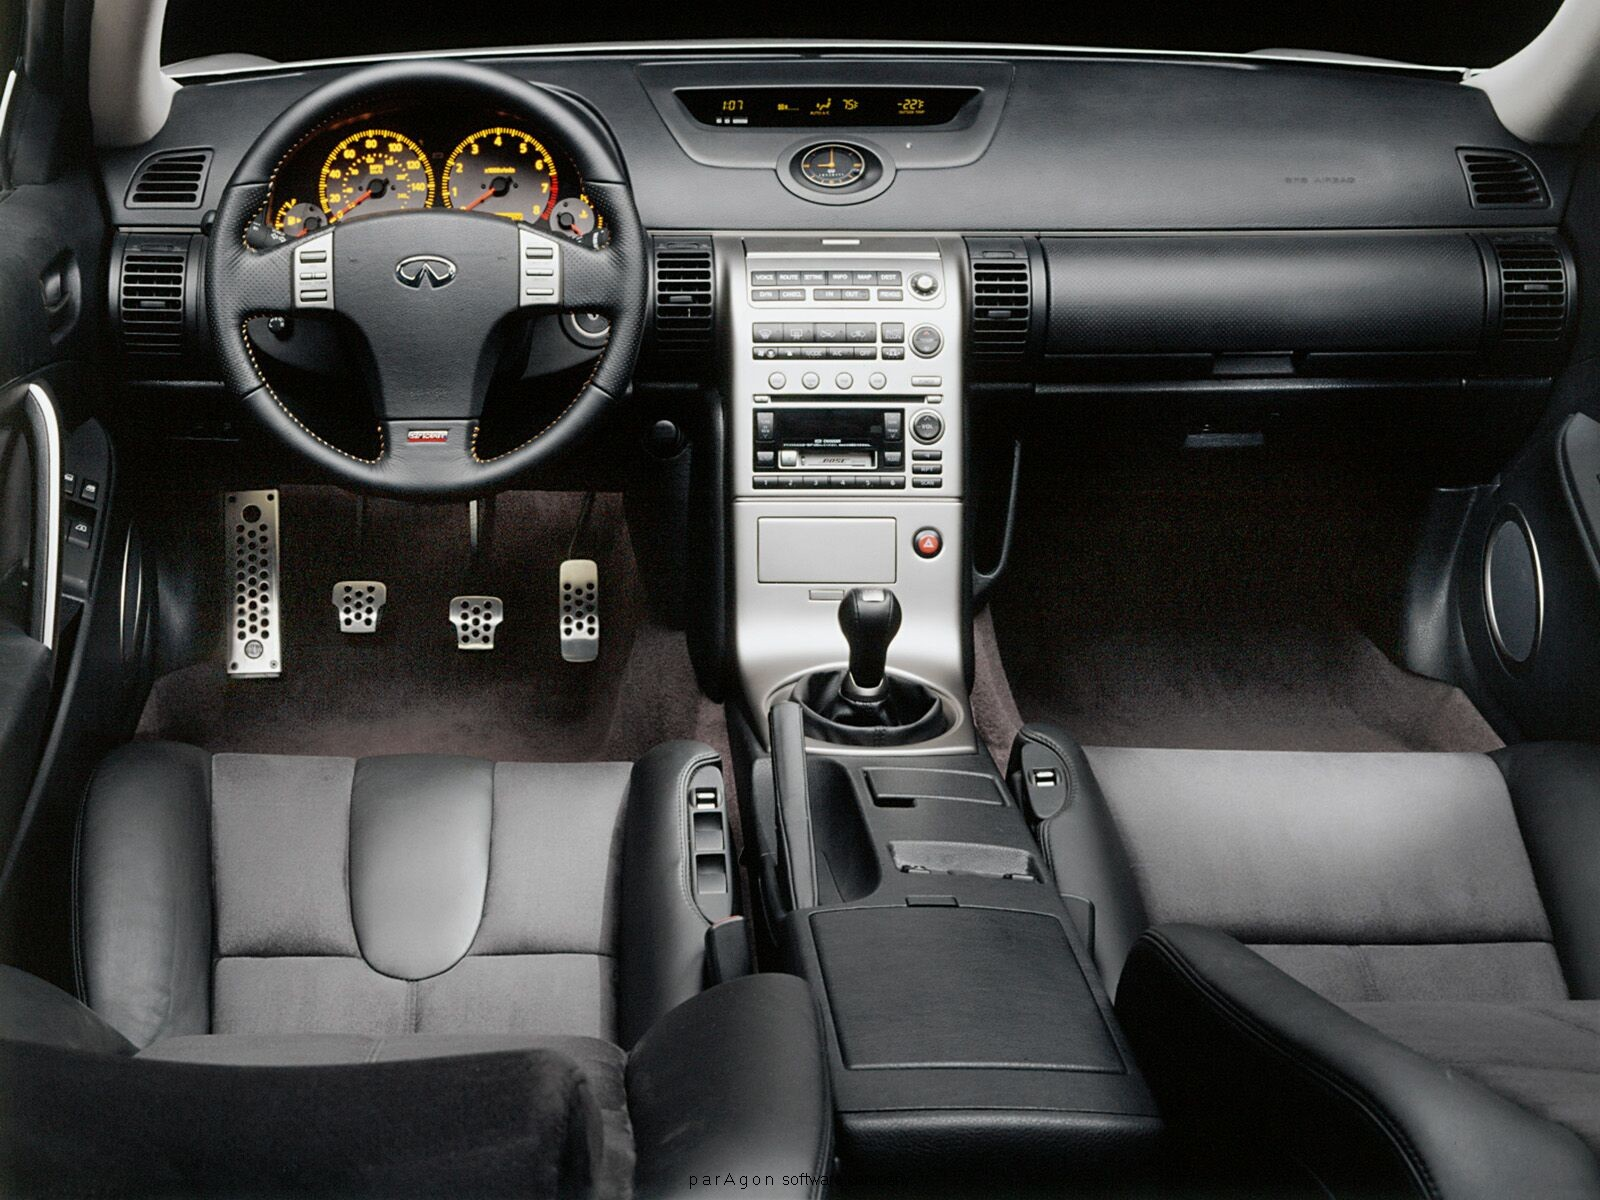 Infiniti g coup history photos on better parts ltd infiniti g coup photo 01 vanachro Image collections